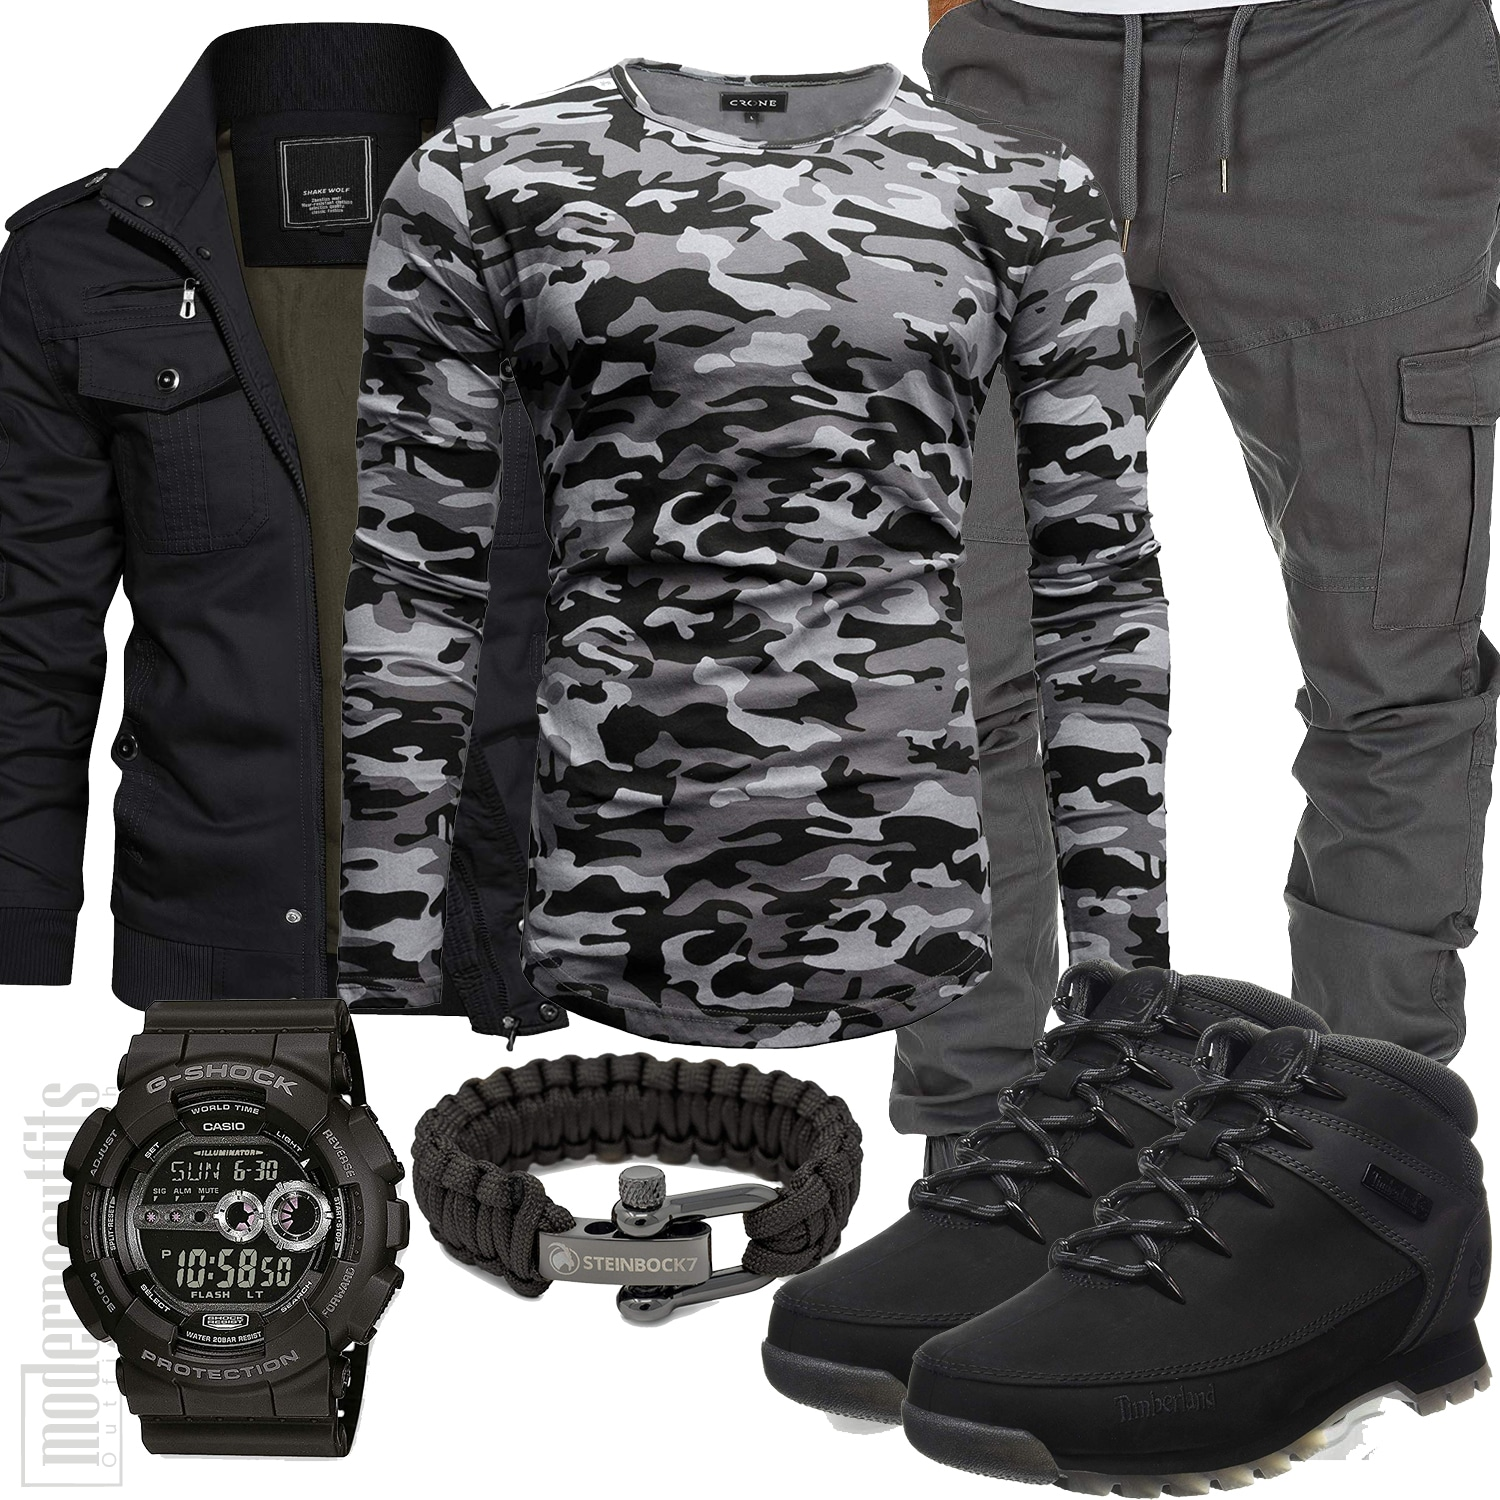 Army Herren Outfit im Military Look